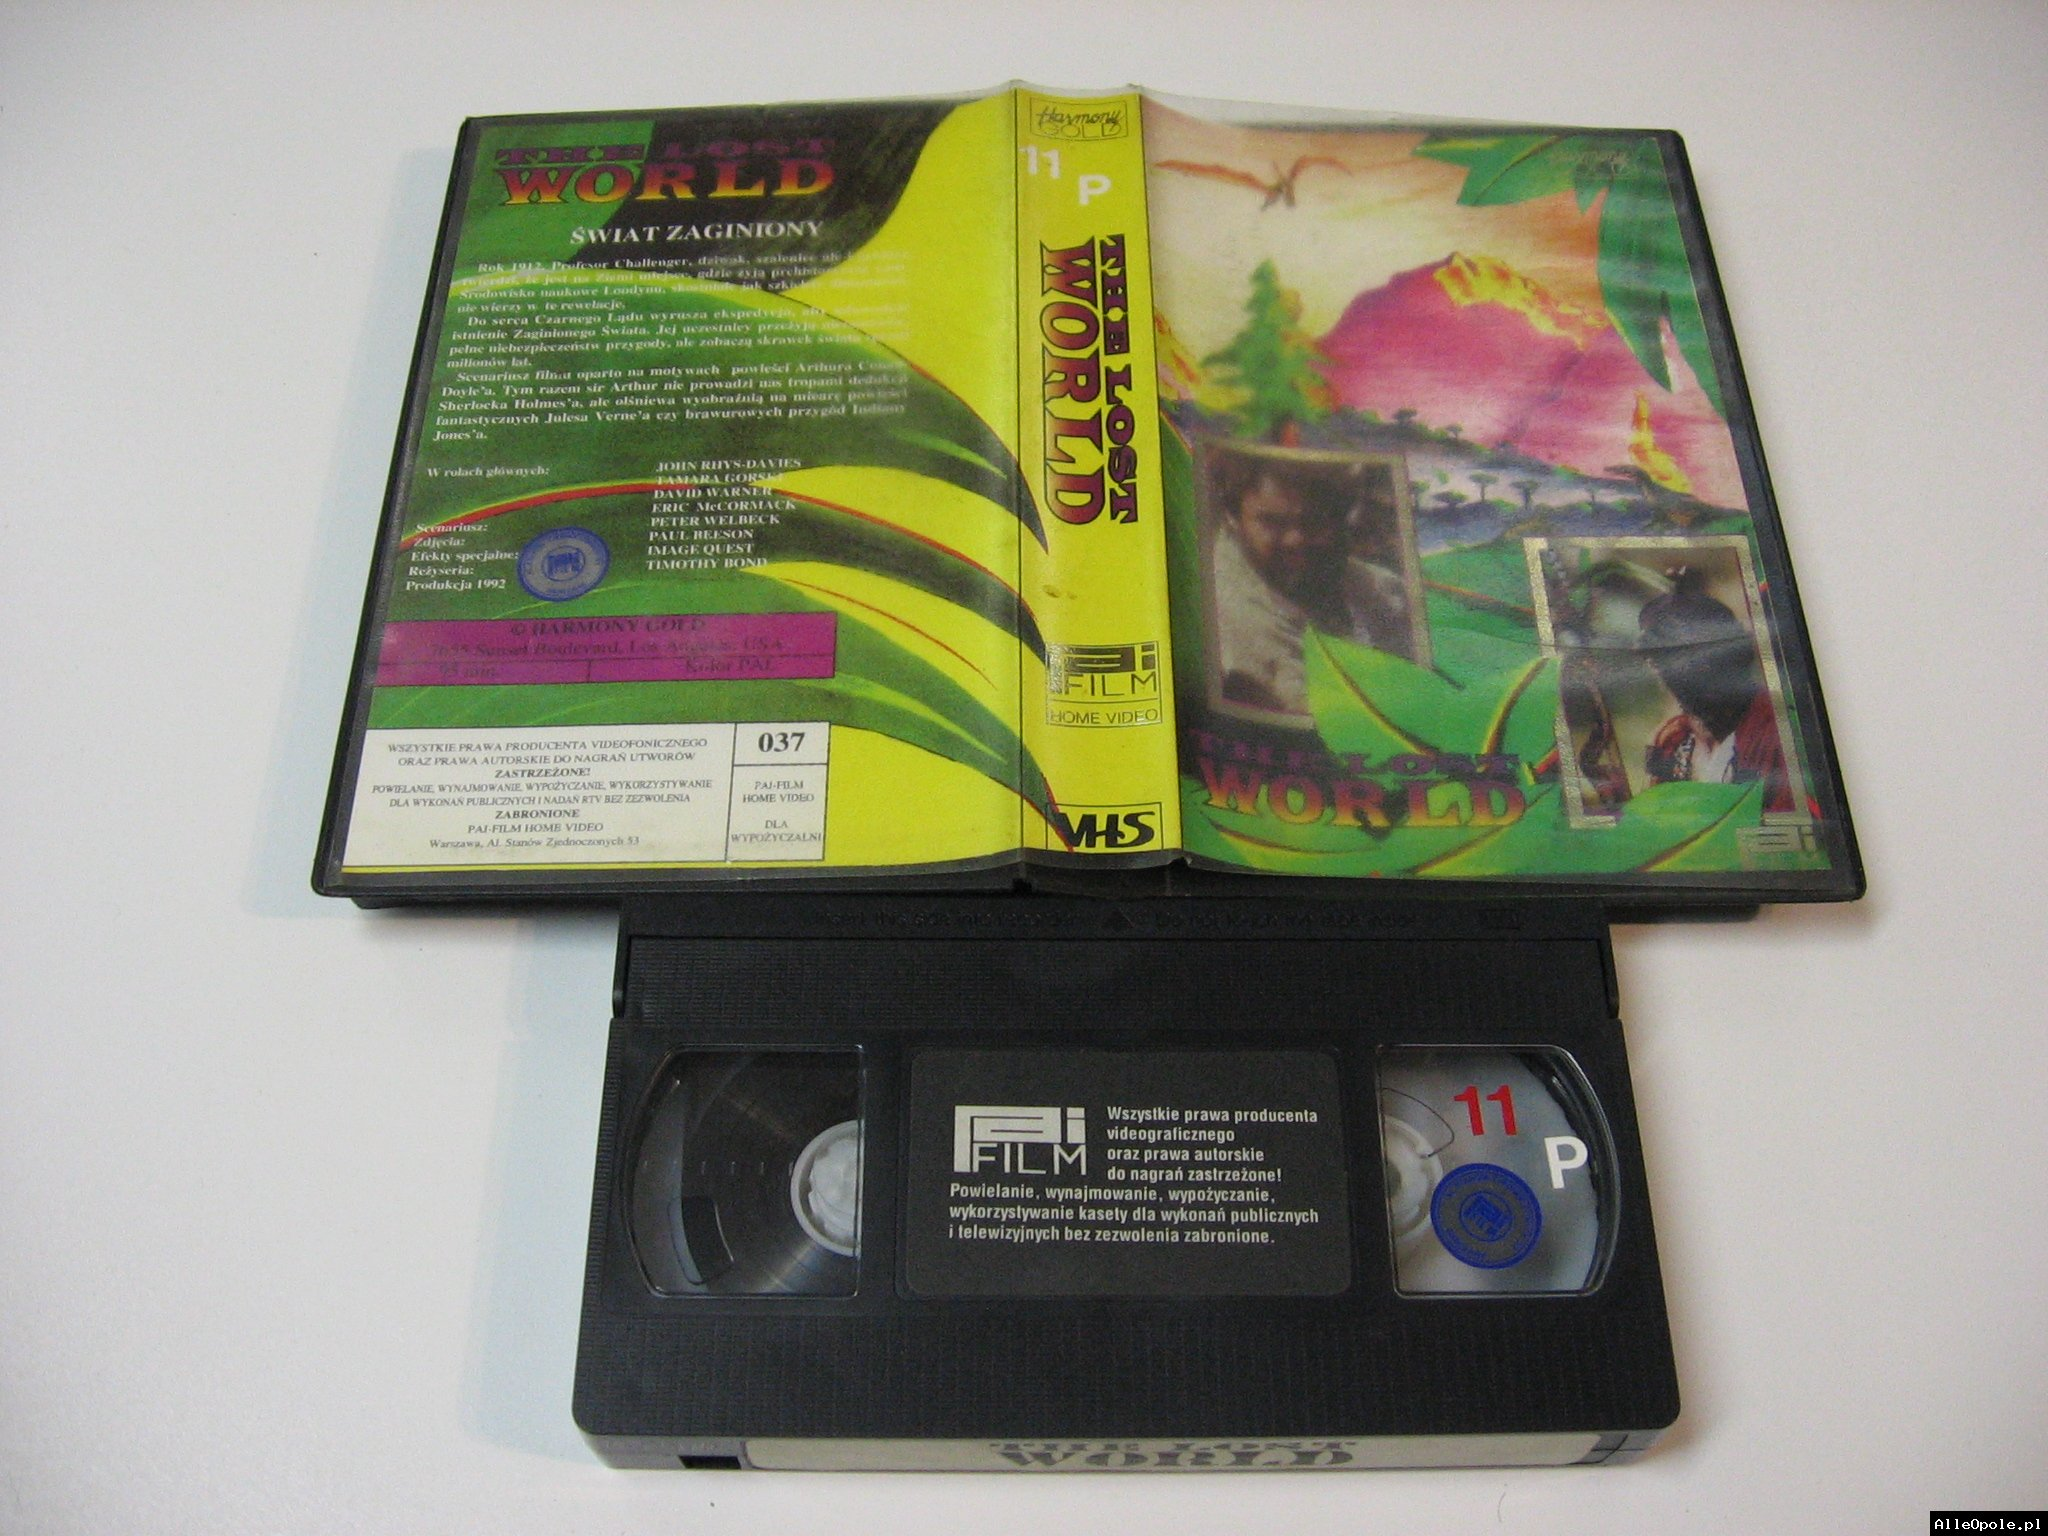 THE LOST WORLD - VHS Kaseta Video - Opole 1749